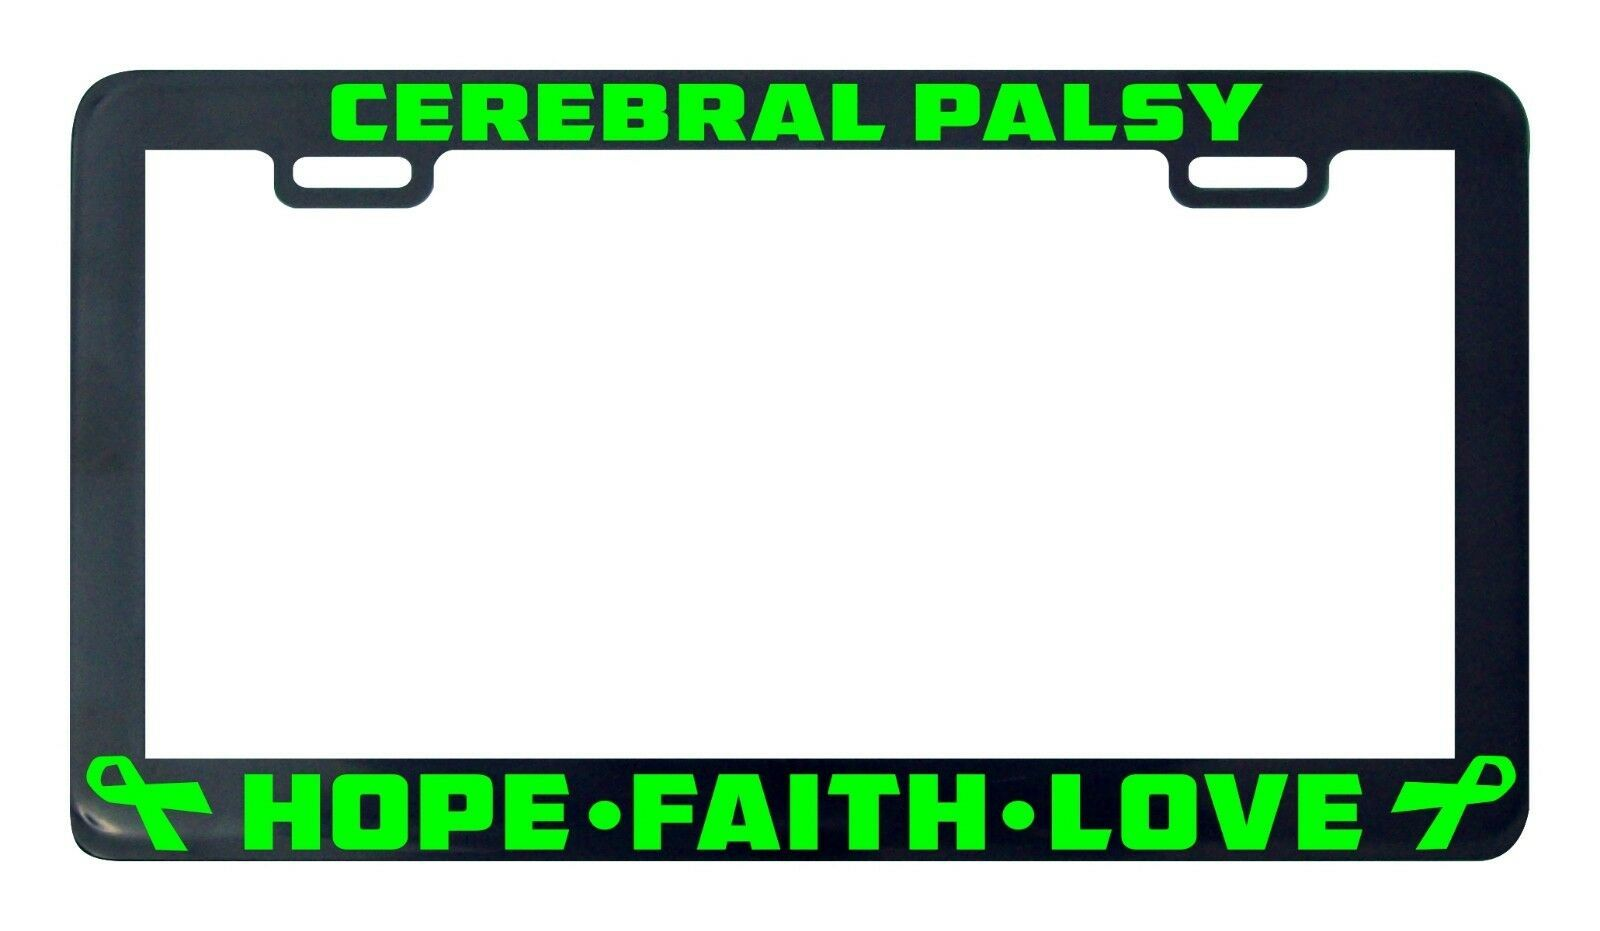 Primary image for Cerebral palsy hope faith love license plate frame holder